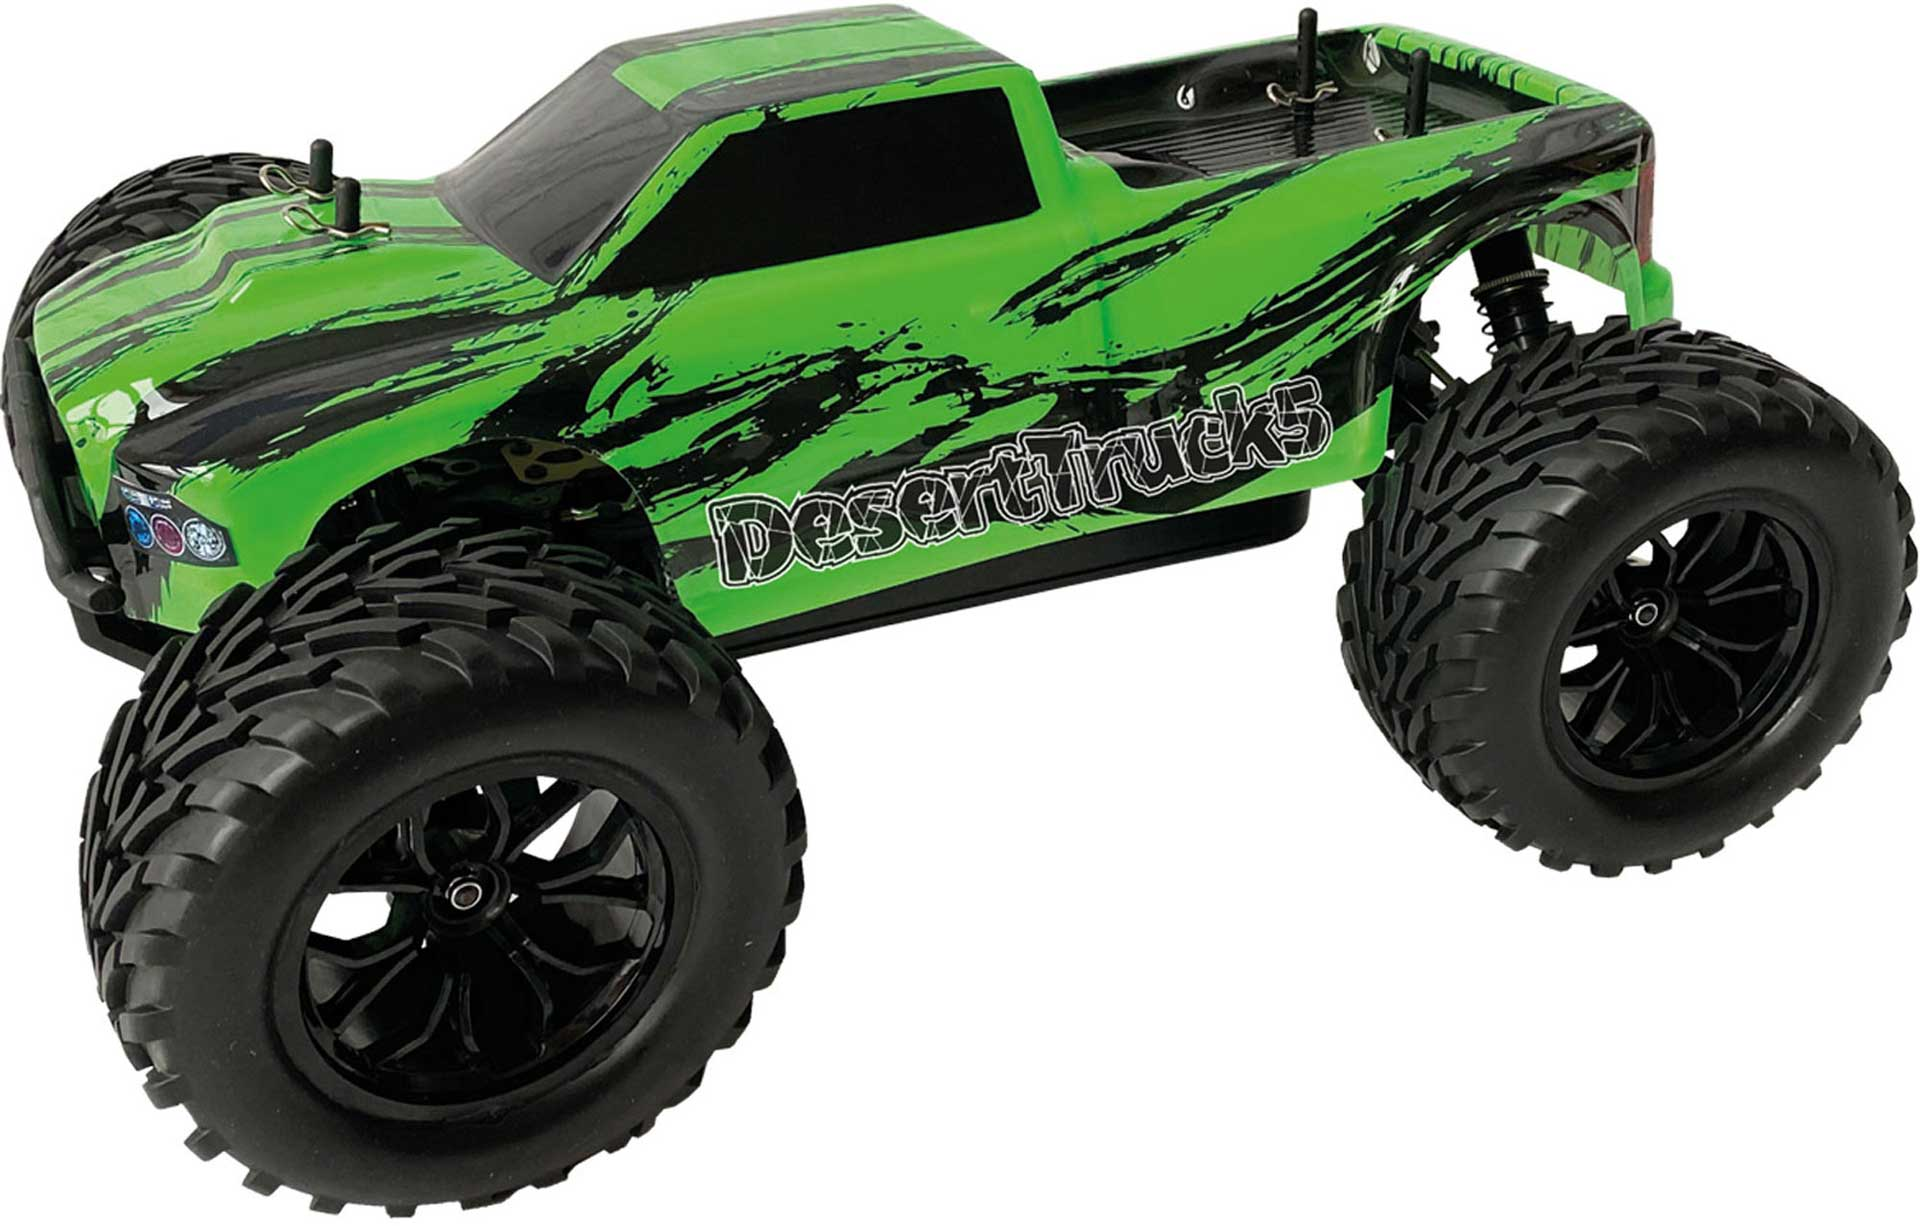 DRIVE & FLY MODELS DESERT TRUCK 5 BRUSHED RTR 1/10 4WD